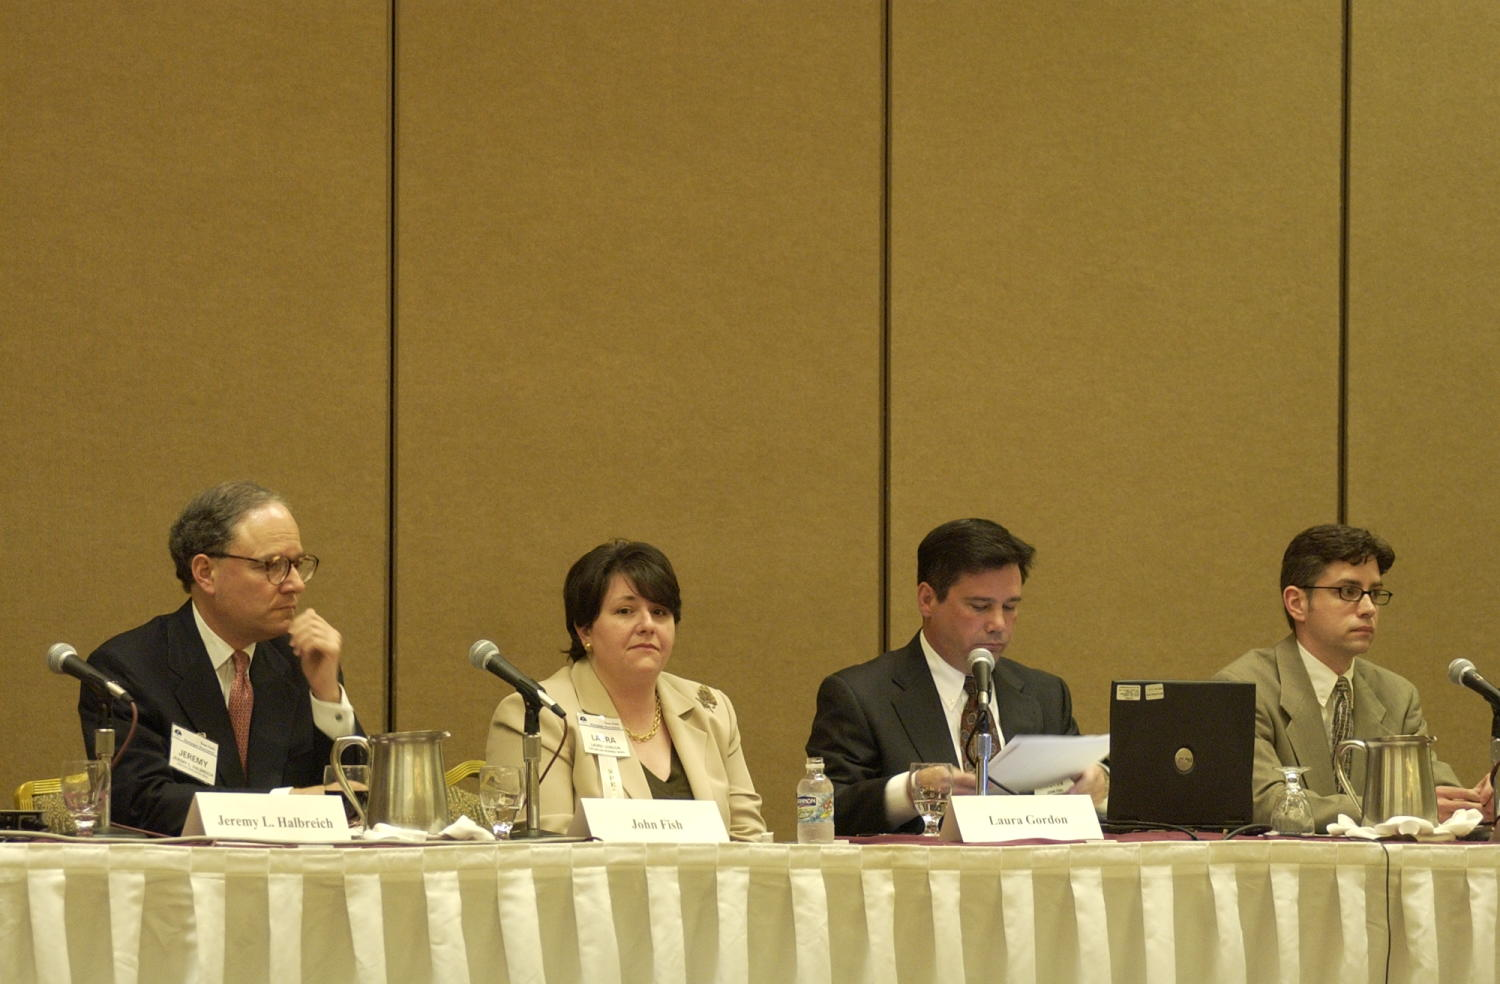 [Jeremy L. Halbreich, Laura Gordon, John Fish and Jim Lenahan], Photograph of (L-R) Jeremy L. Halbreich, Laura Gordon, John Fish and Jim Lenahan, guest speakers attending the 2004 Texas Daily News Association annual conference held in Corpus Christi. Fish is seen sitting in front of a laptop and reading from his notes as he gives a presentation to the conference goers, his fellow guest speakers sit on either side of him and listen.,